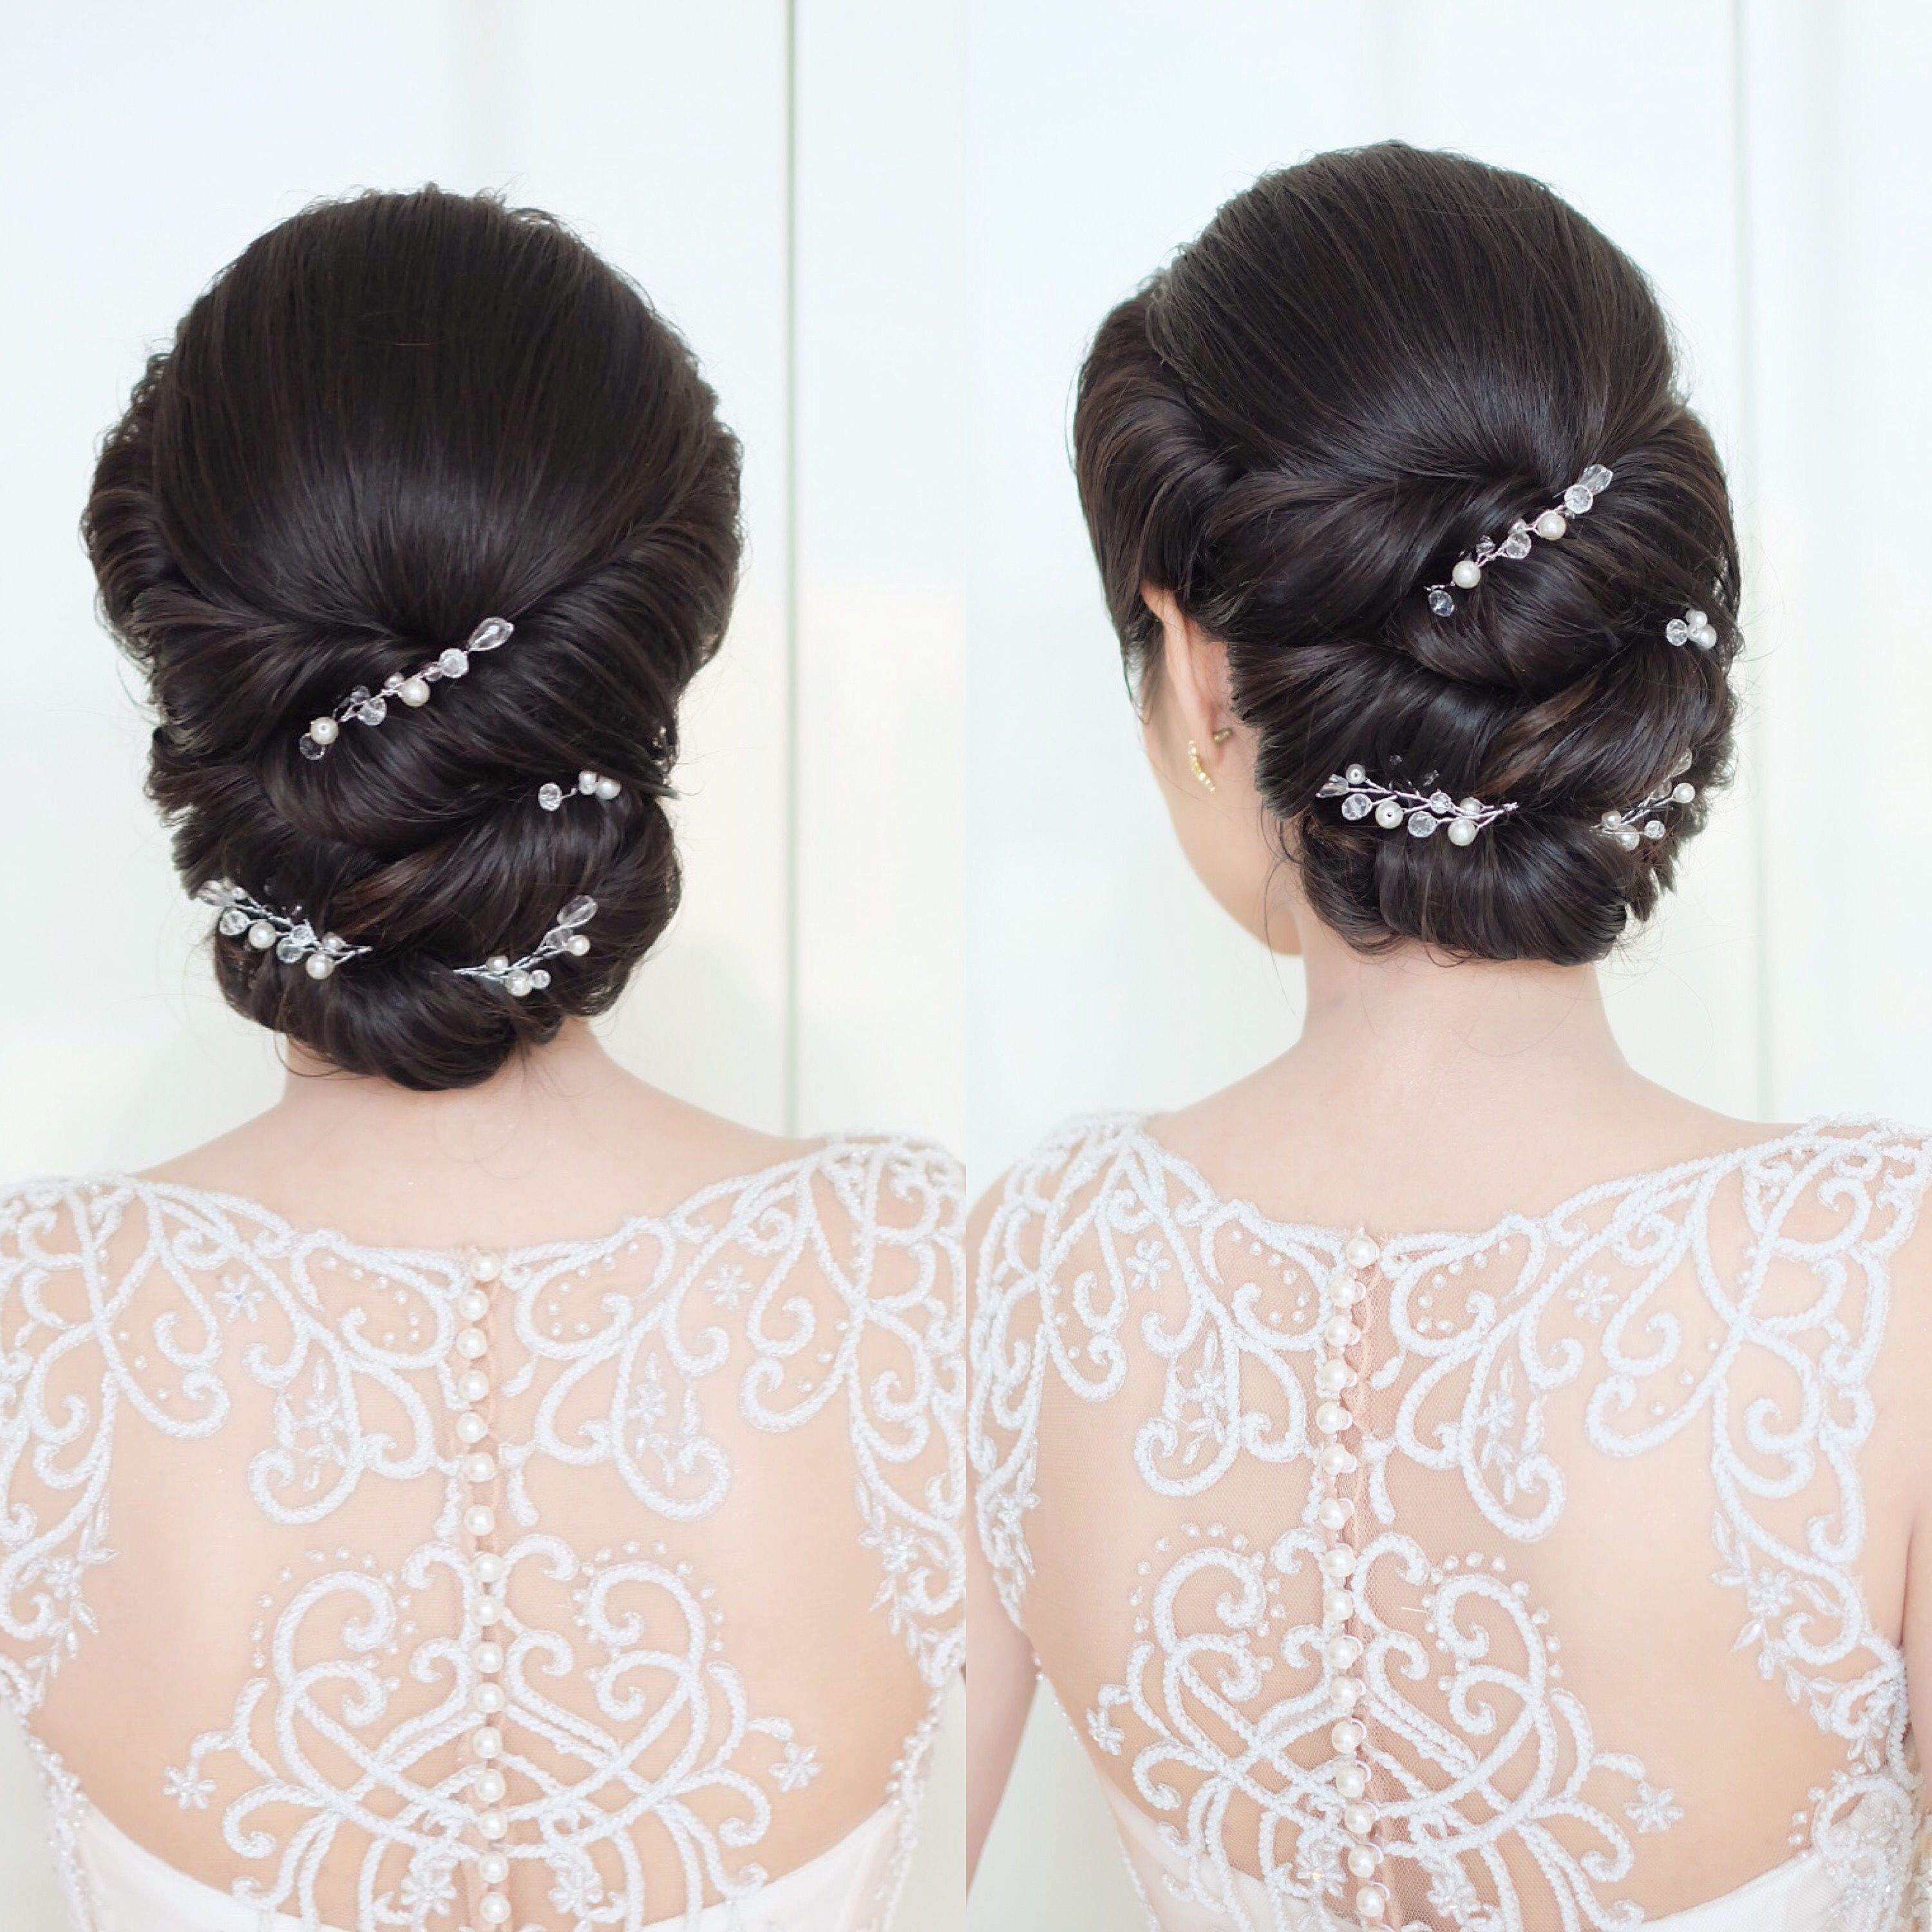 Pin by shobha anand on hair styles | Pinterest | Hair style, Bridal ...